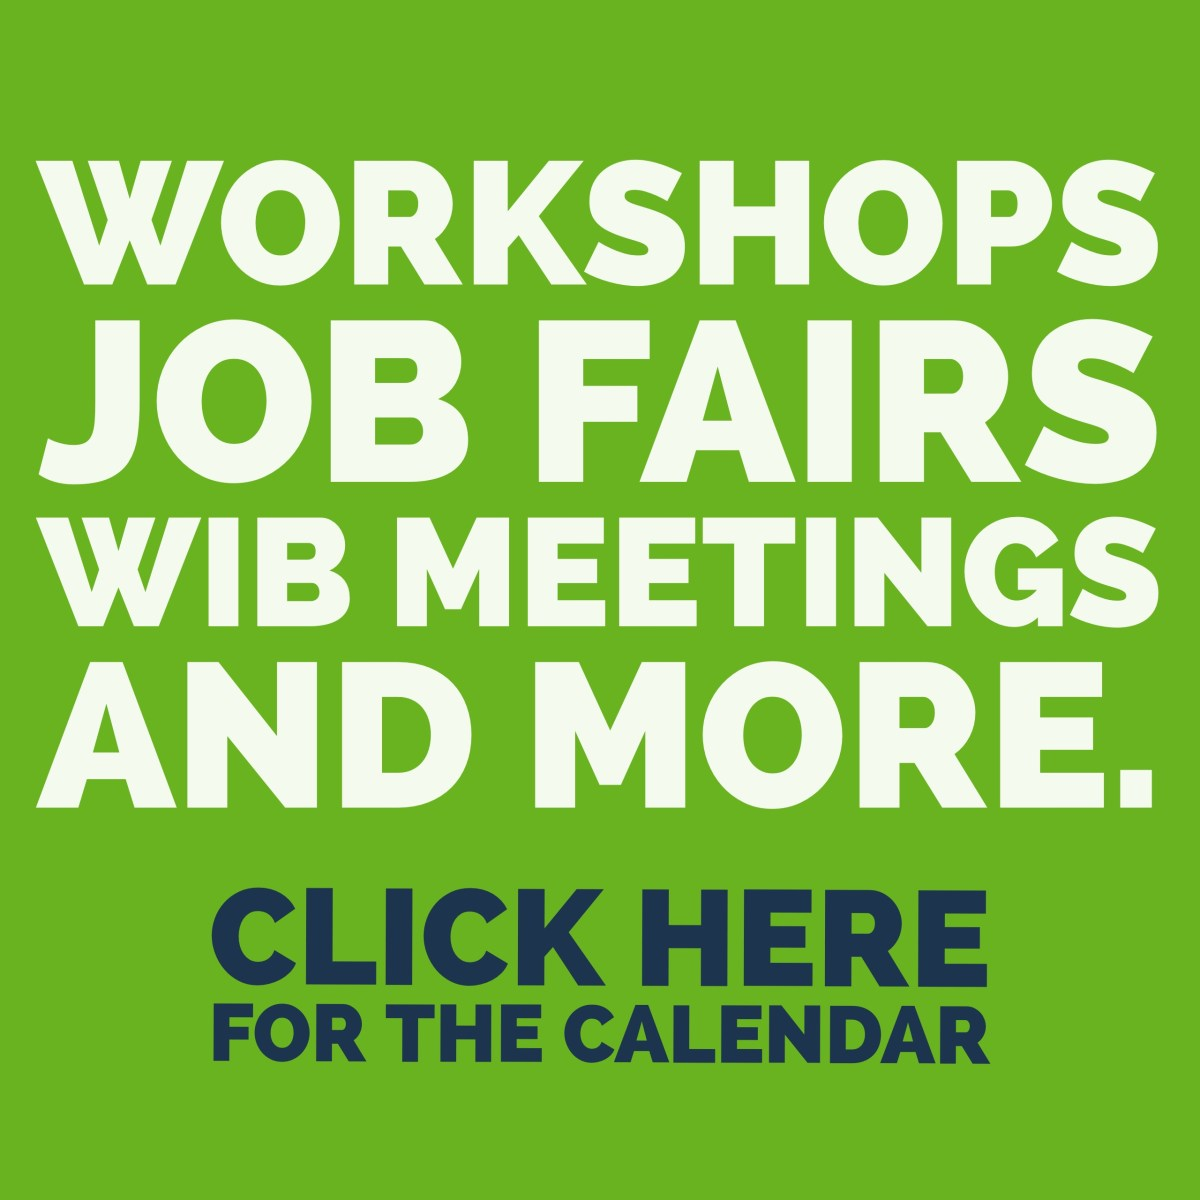 Workshops, Job Fairs, WIB Meetings Calendar link